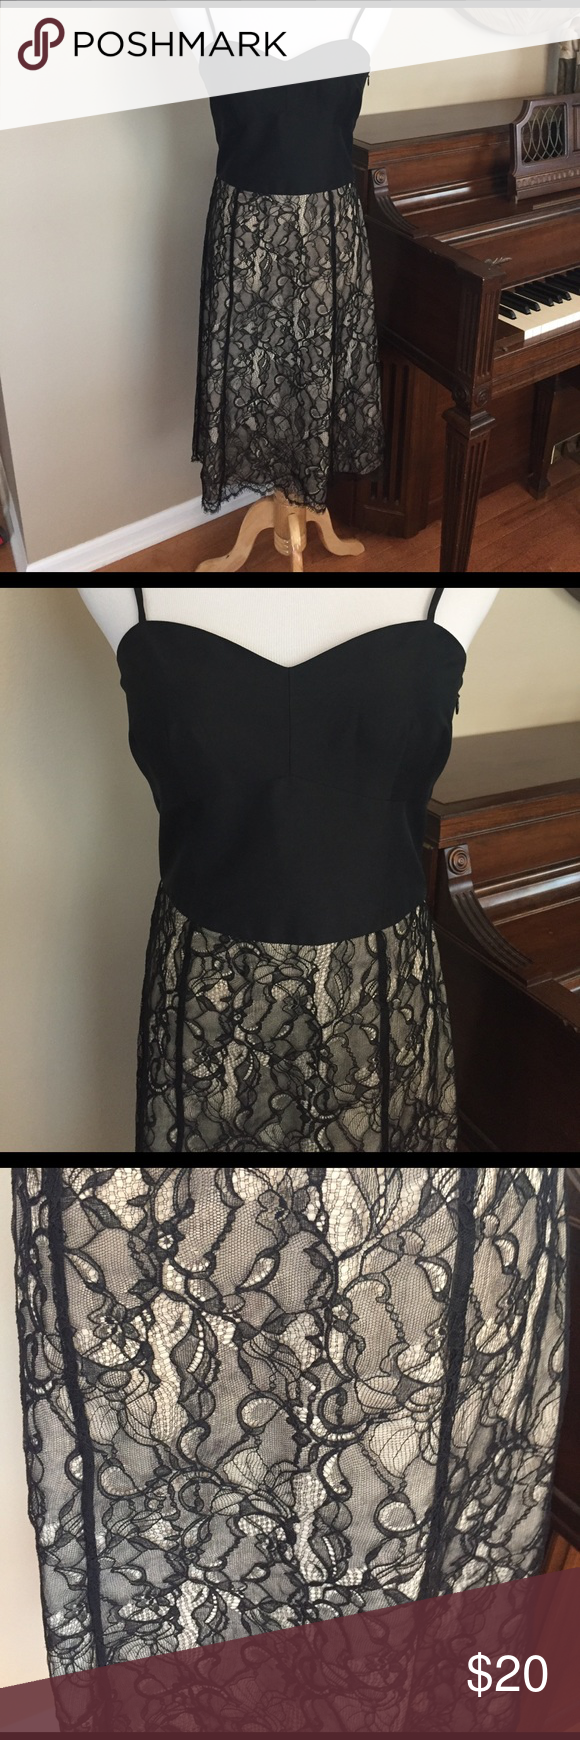 Ann Taylor Size 4 Beautiful Black Cocktail Dress | Black cocktail dress